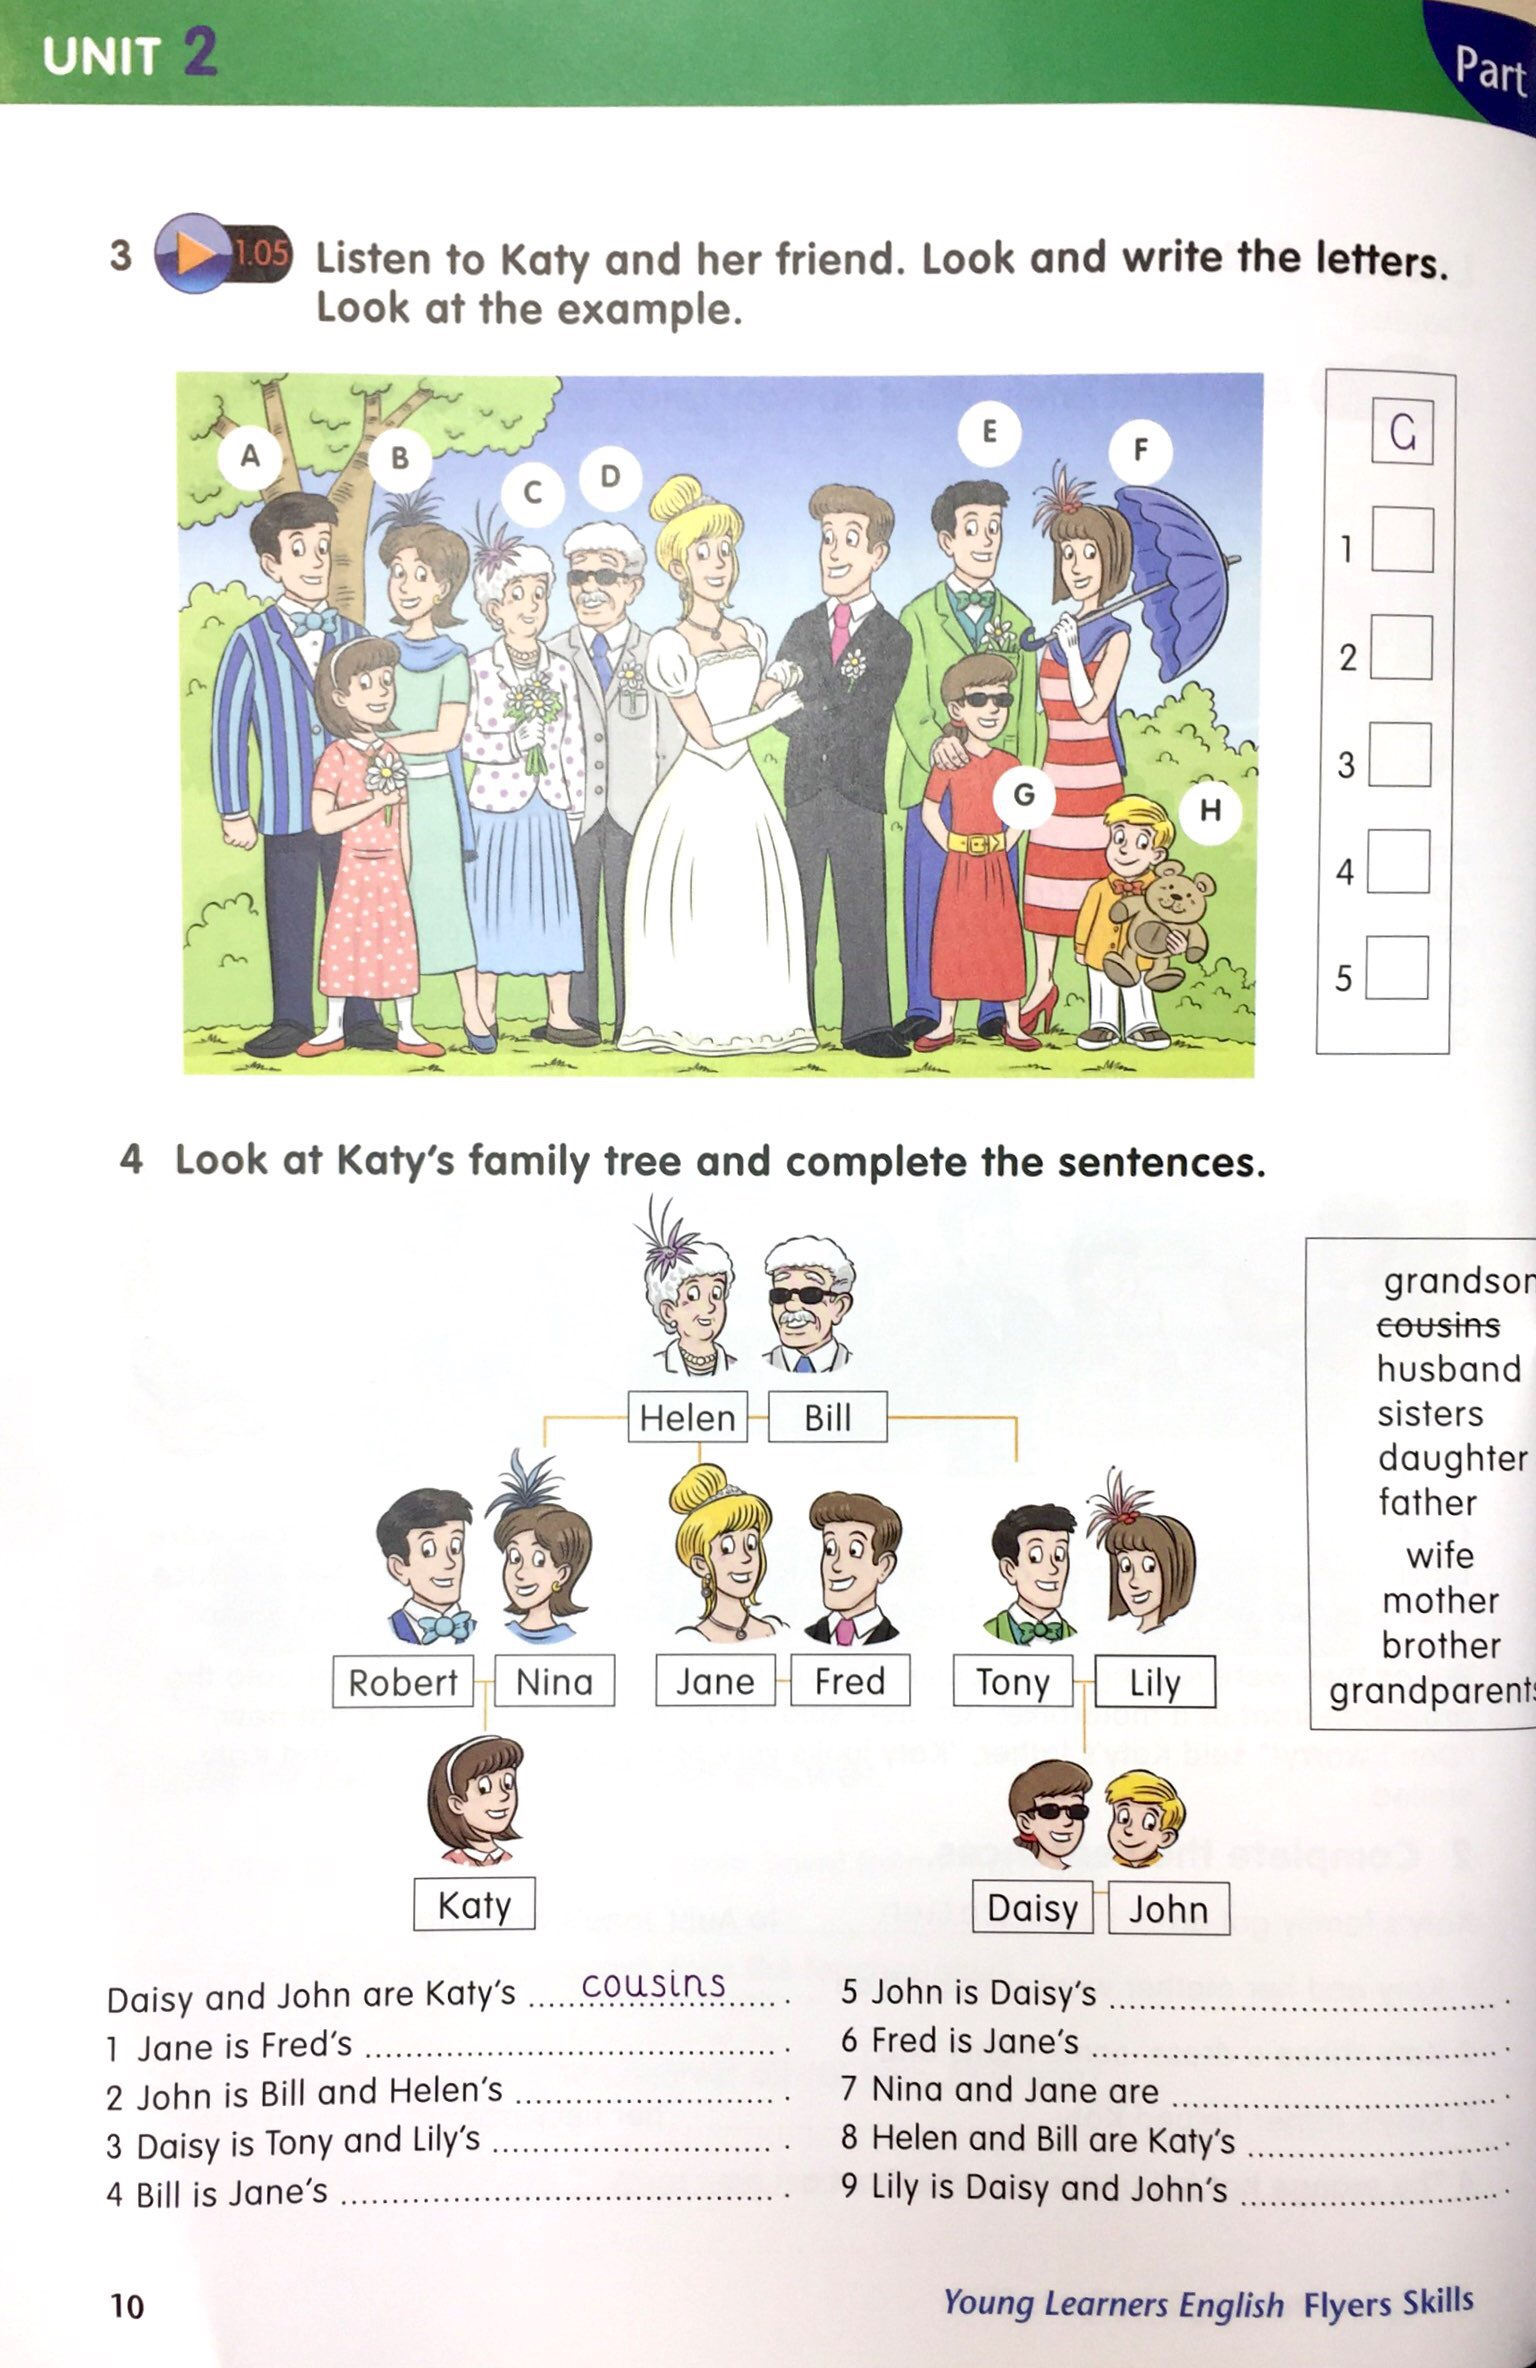 Young Learners English Skills Flyers Student's Book